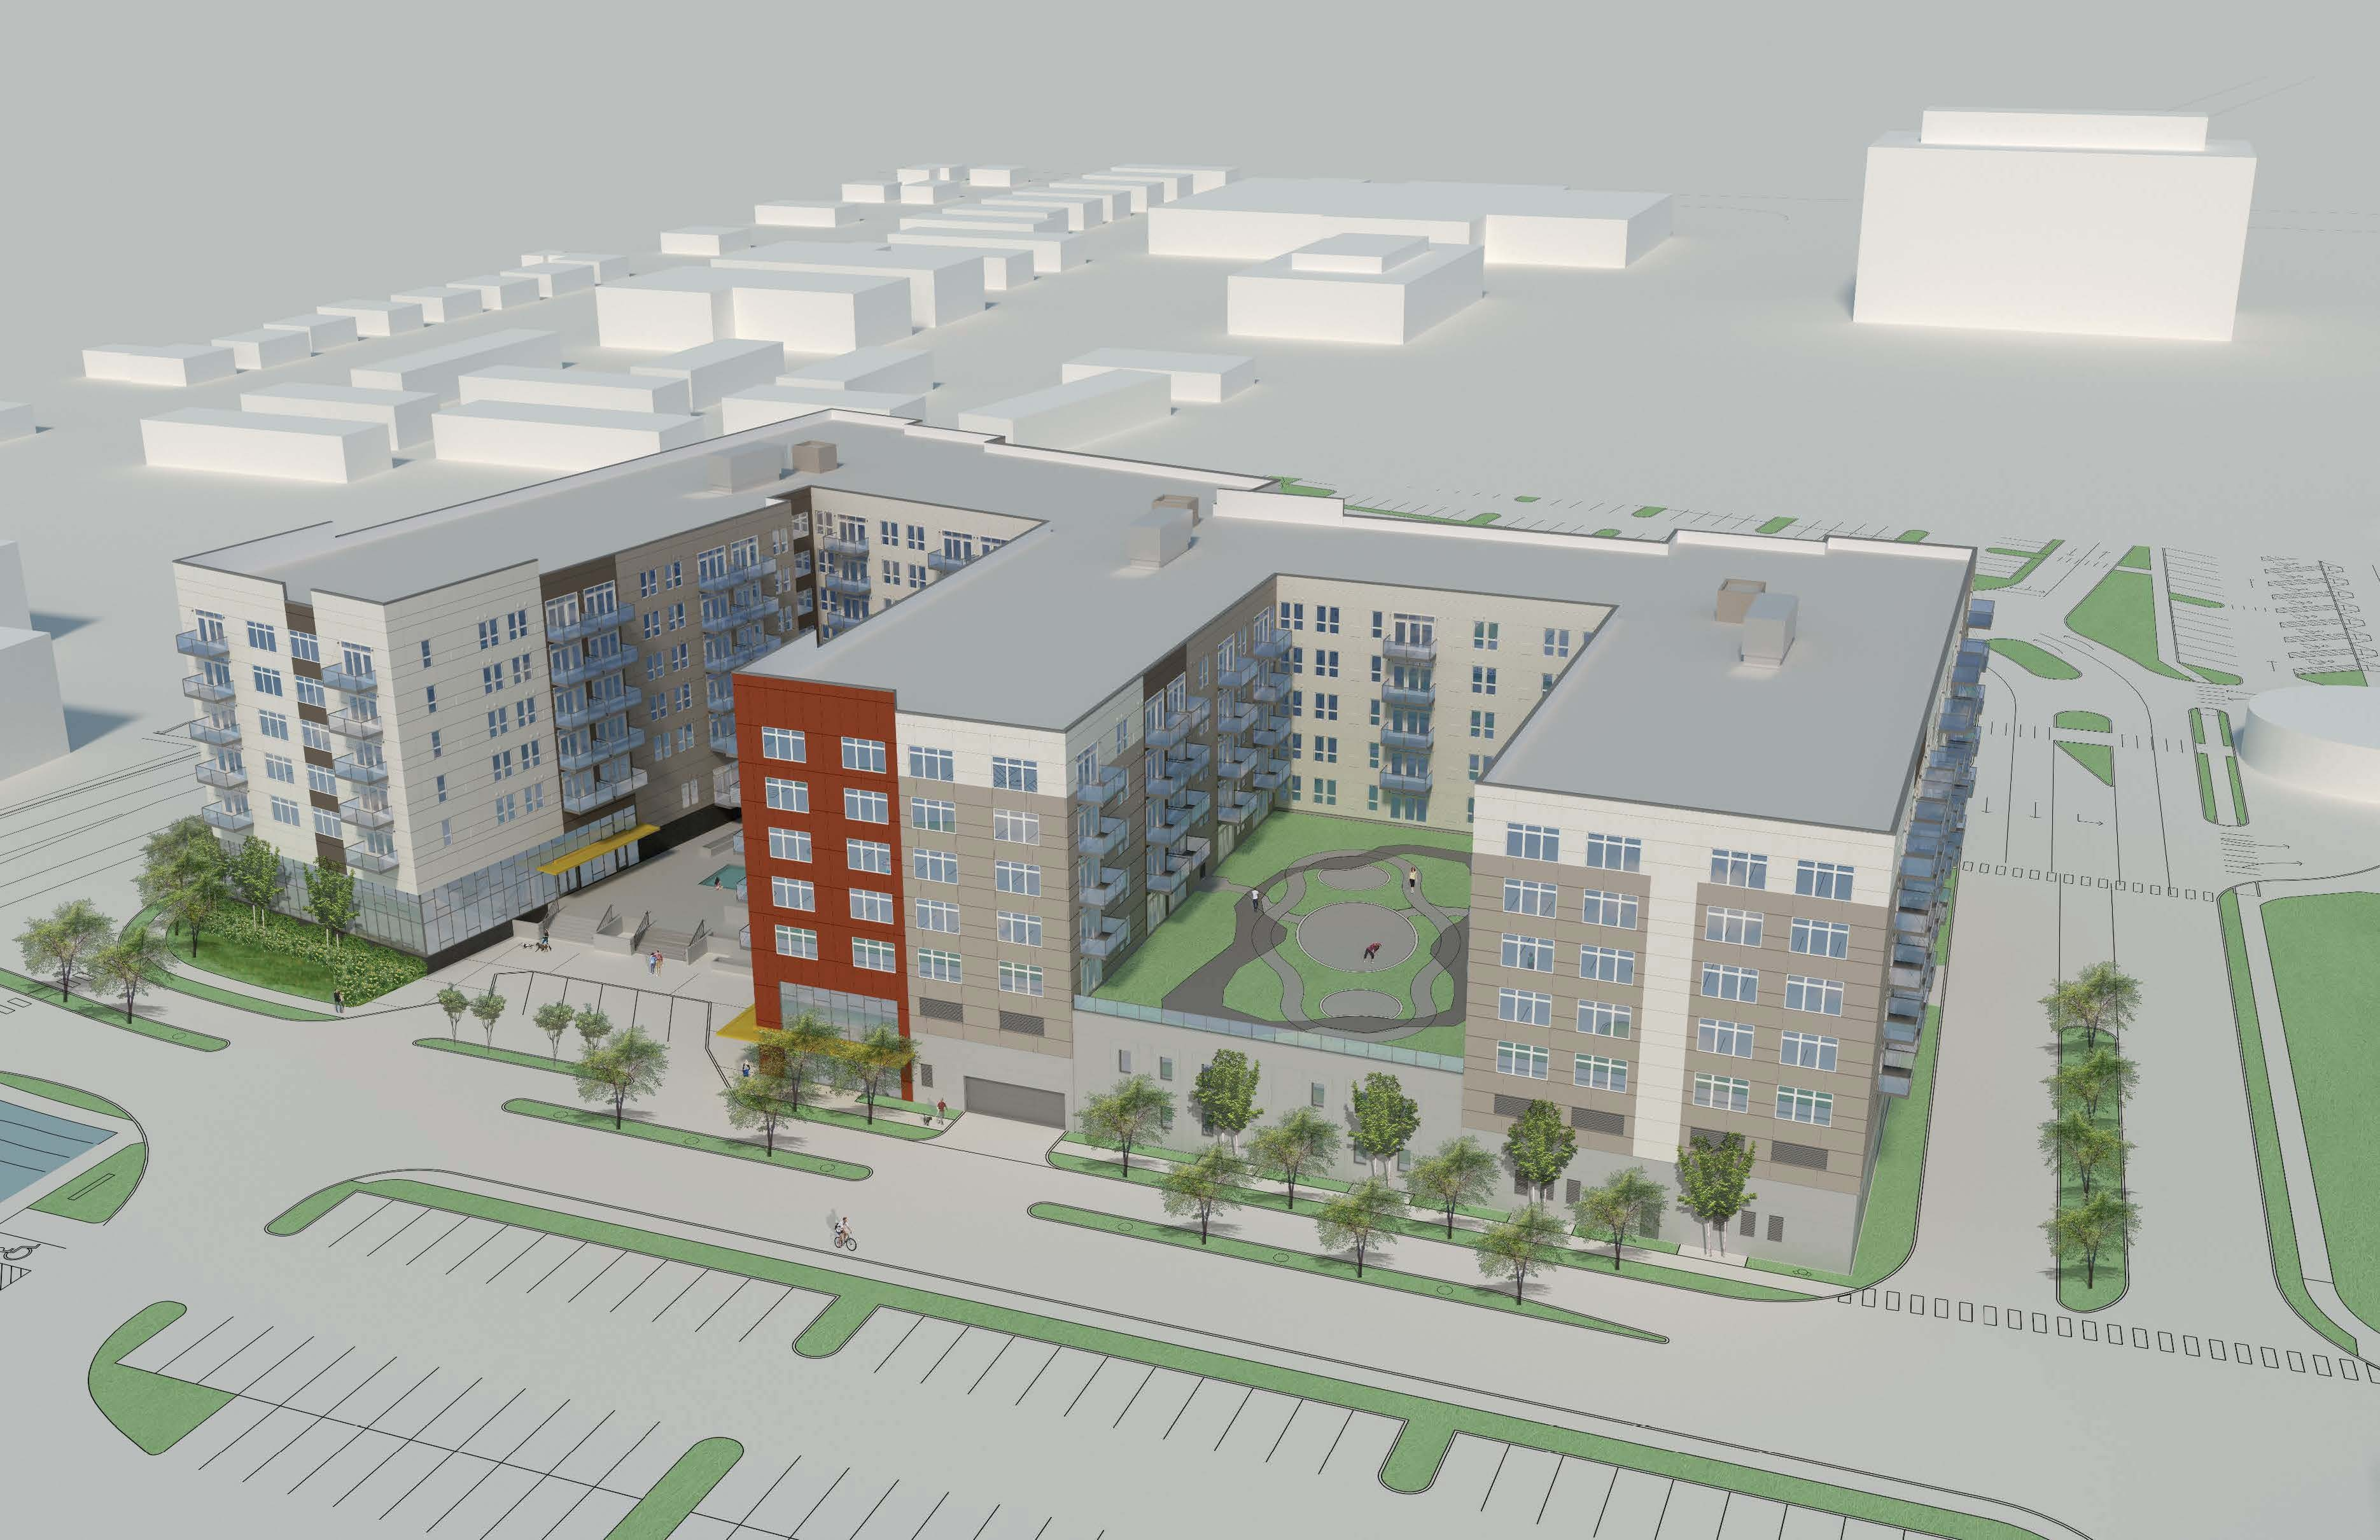 How's Chicago supposed to desegregate when developments with